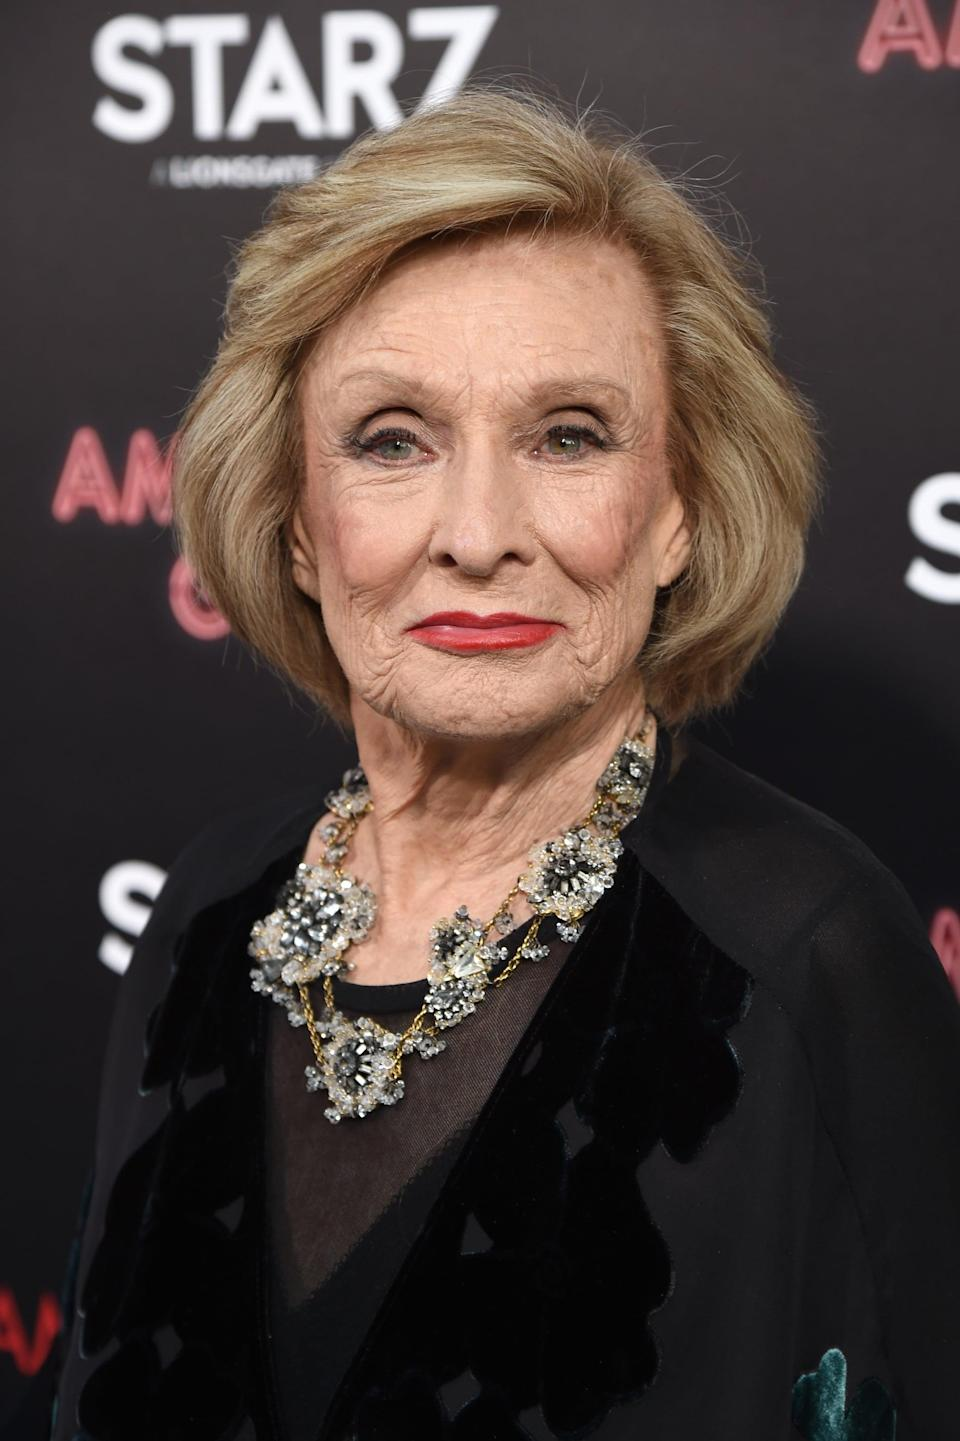 """<p>The famed actress, who scored eight Emmy Awards and 22 nominations throughout her career, <a href=""""https://deadline.com/2021/01/cloris-leachman-dead-mary-tyler-moore-last-picture-show-mel-brooks-1234681853/"""" class=""""link rapid-noclick-resp"""" rel=""""nofollow noopener"""" target=""""_blank"""" data-ylk=""""slk:died of natural causes on Jan. 26"""">died of natural causes on Jan. 26</a> at her home in Encinitas, CA. She was 94. </p>"""